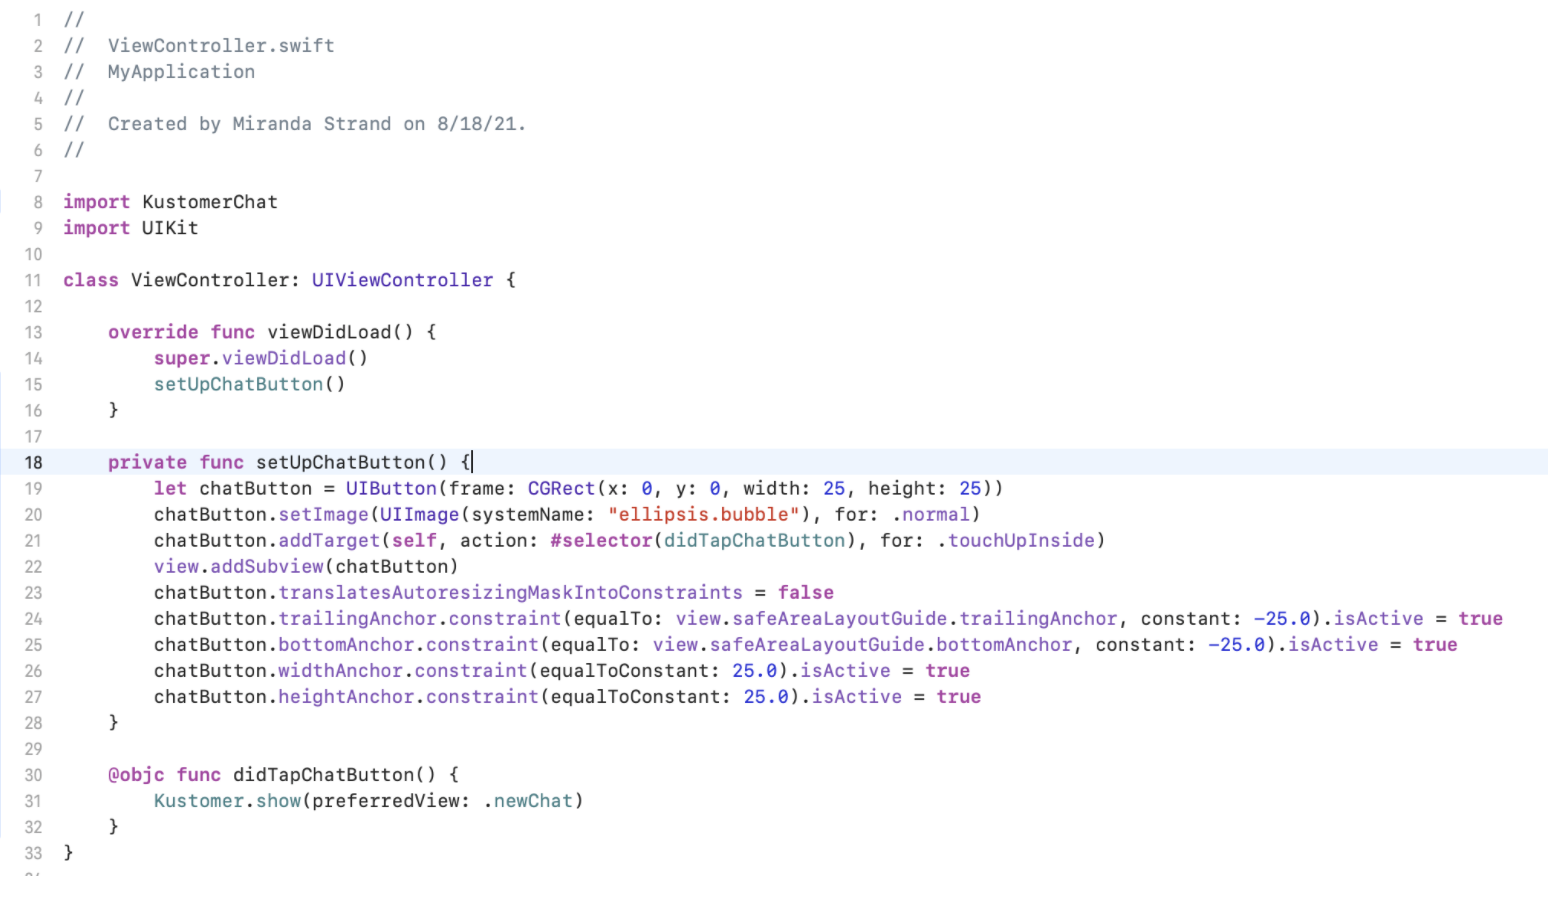 Alternate code to use in ViewController.swift.